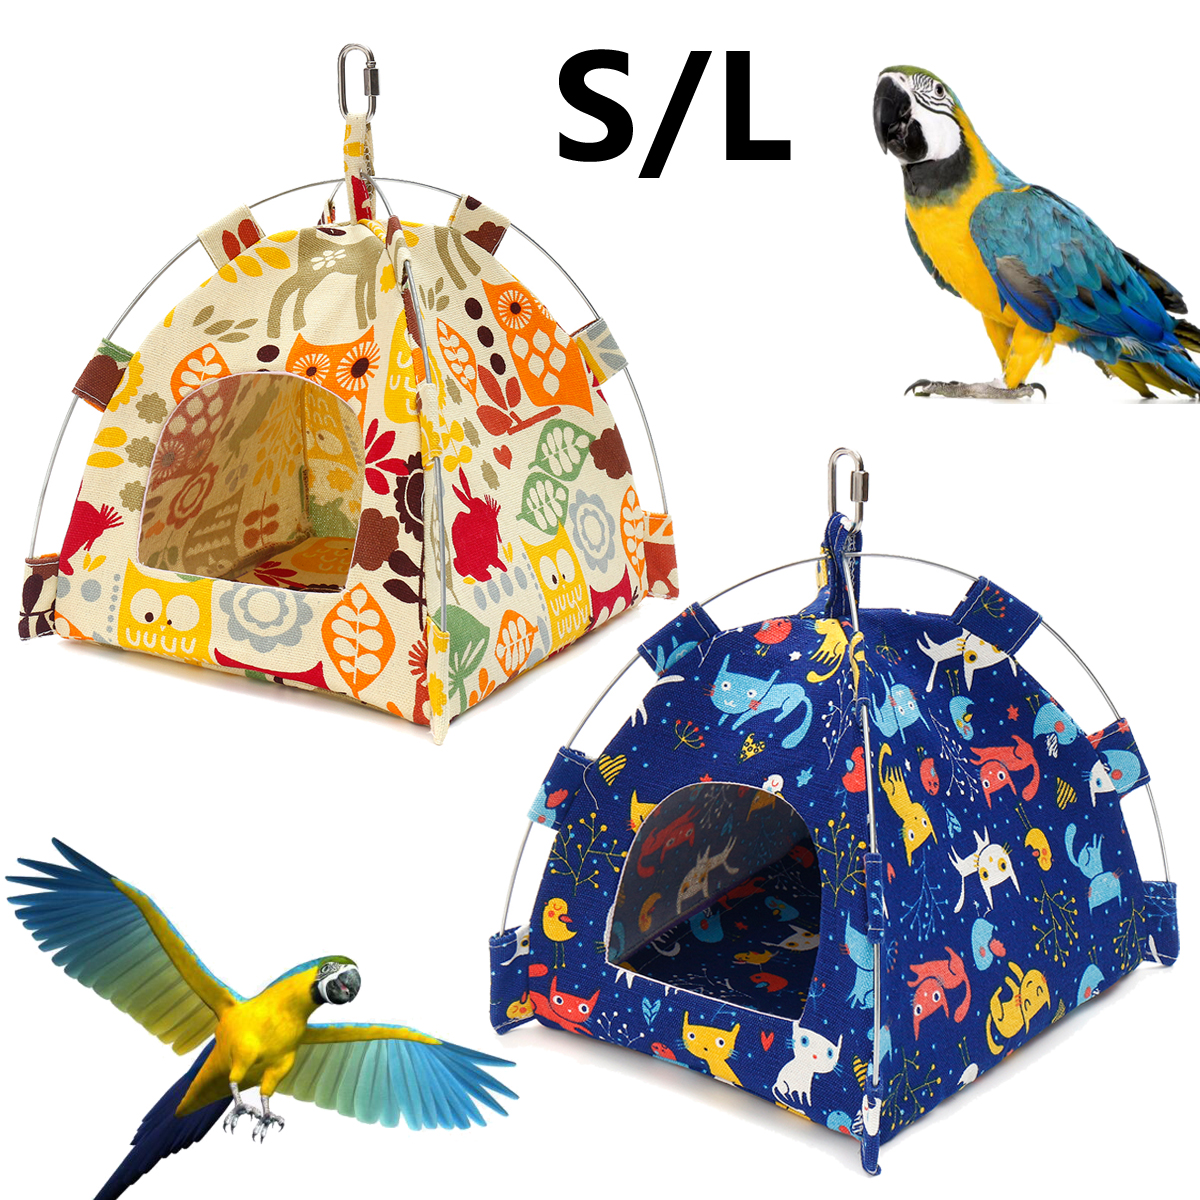 Pet Products Home & Garden Pet Parrot Hammock Pet Birds Bed House Hanging Fuzzy Plush Winter Warm Soft Nest Toy Professional Design